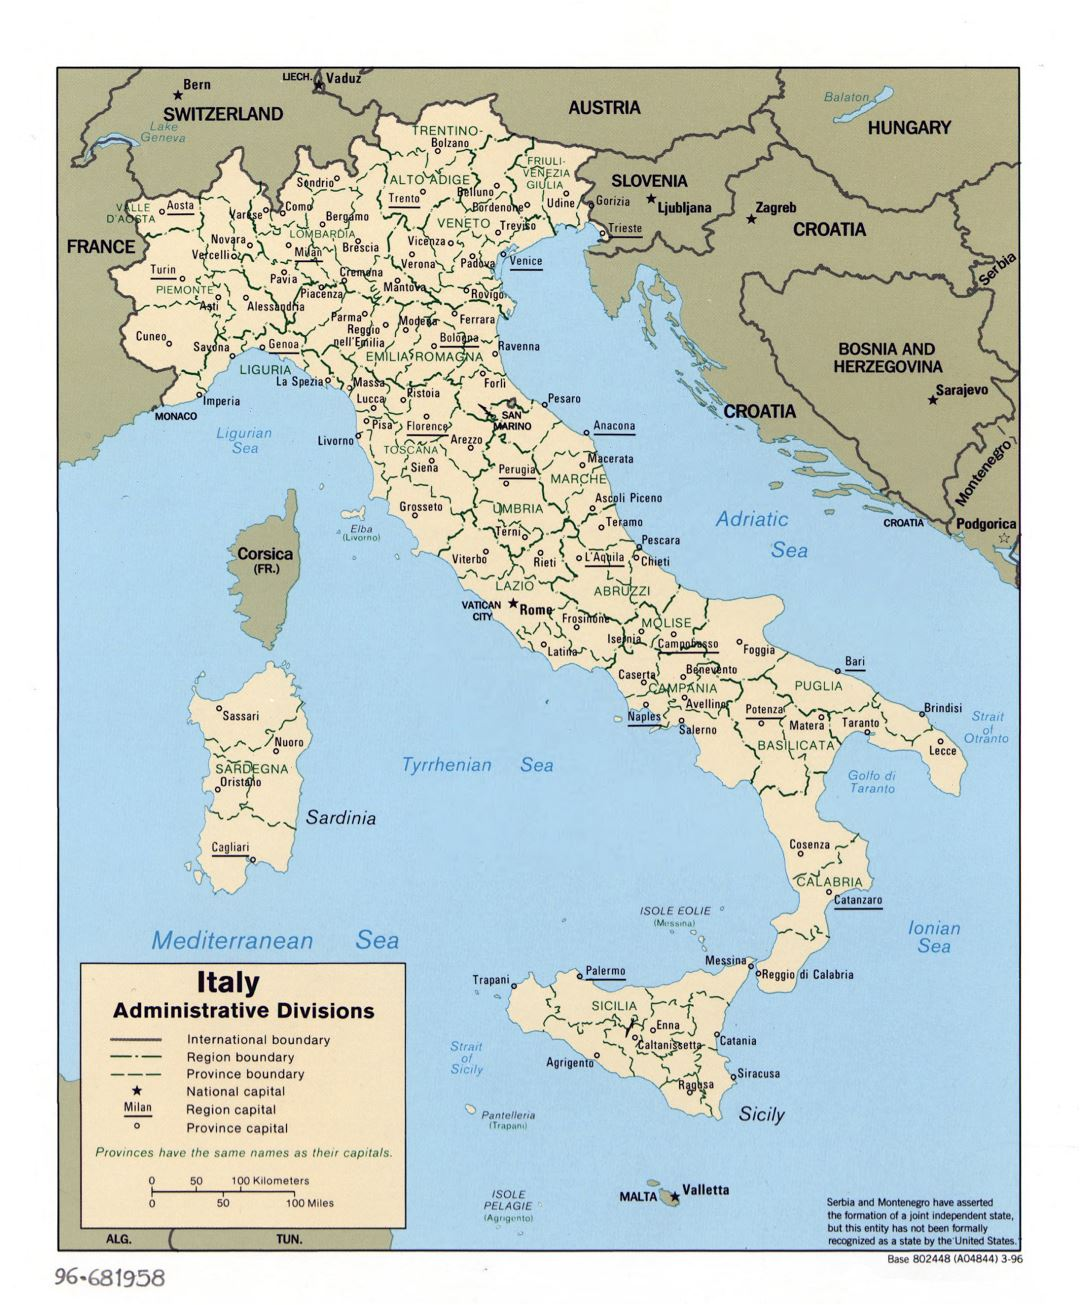 Large scale administrative divisions map of Italy - 1996